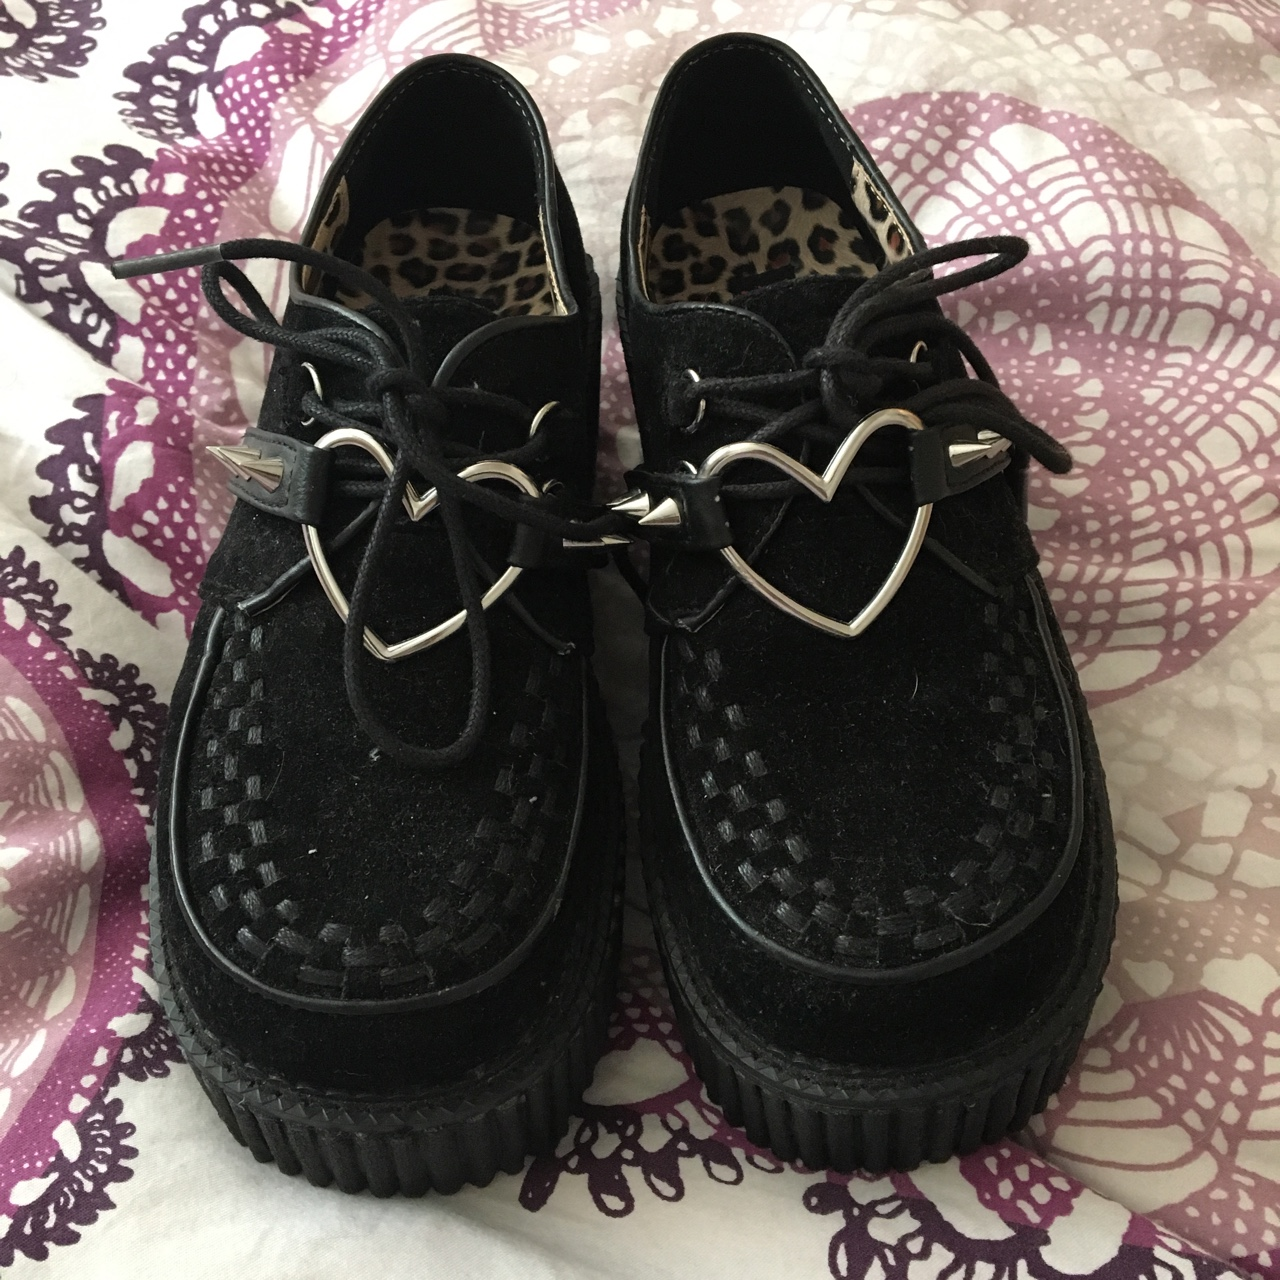 Demonia creepers with heart and spike